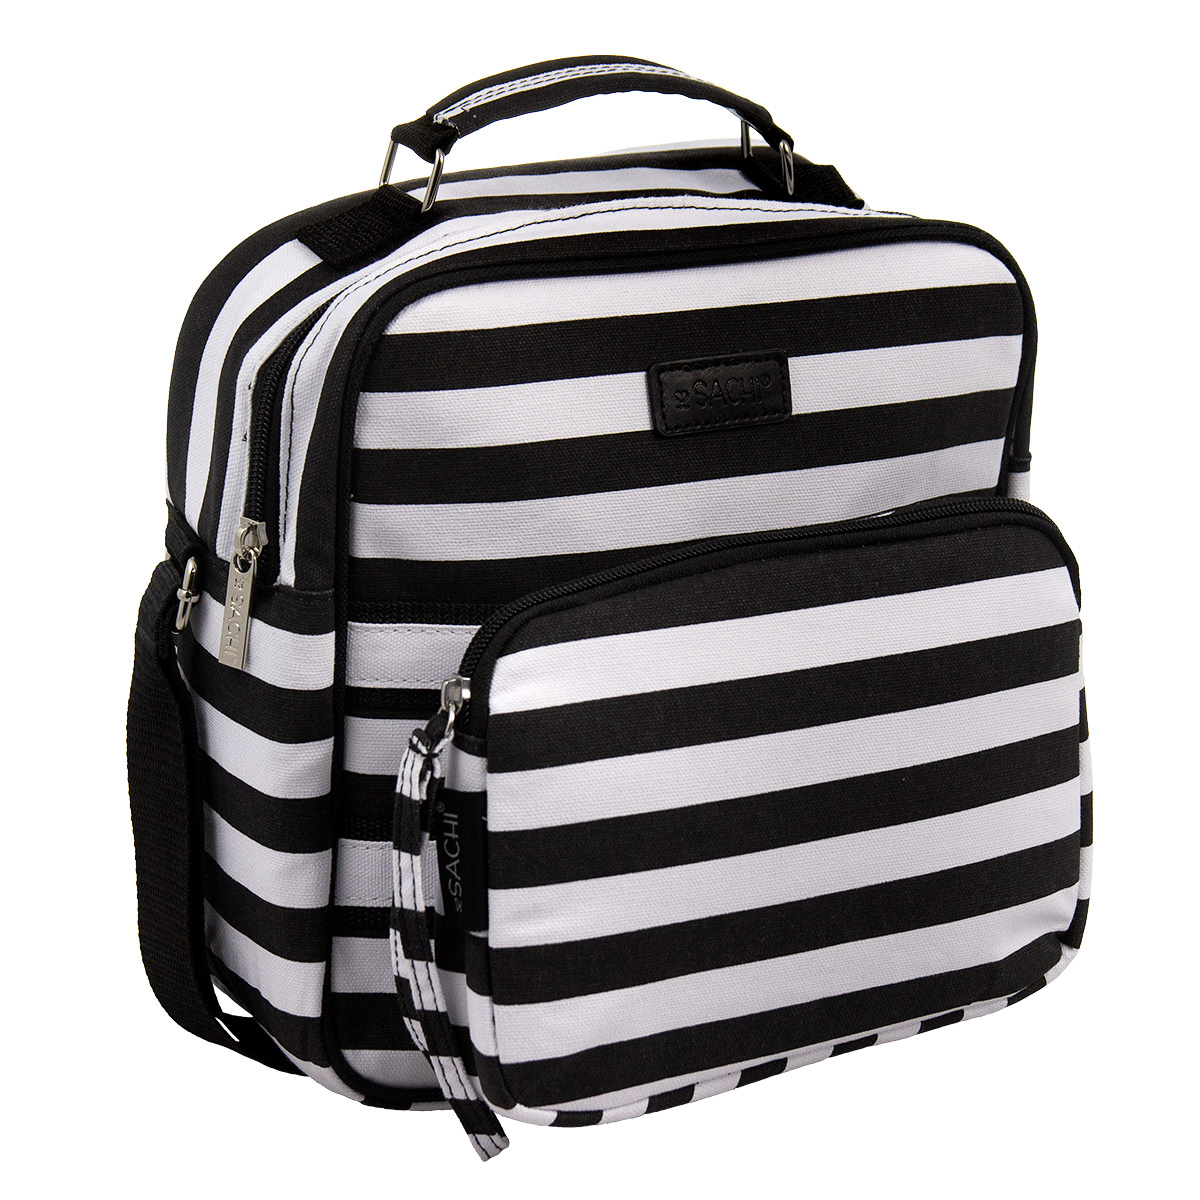 Sachi Convertible 2 in 1 Cross-body Canvas Insulated Leak Proof Tote Lunch Bag